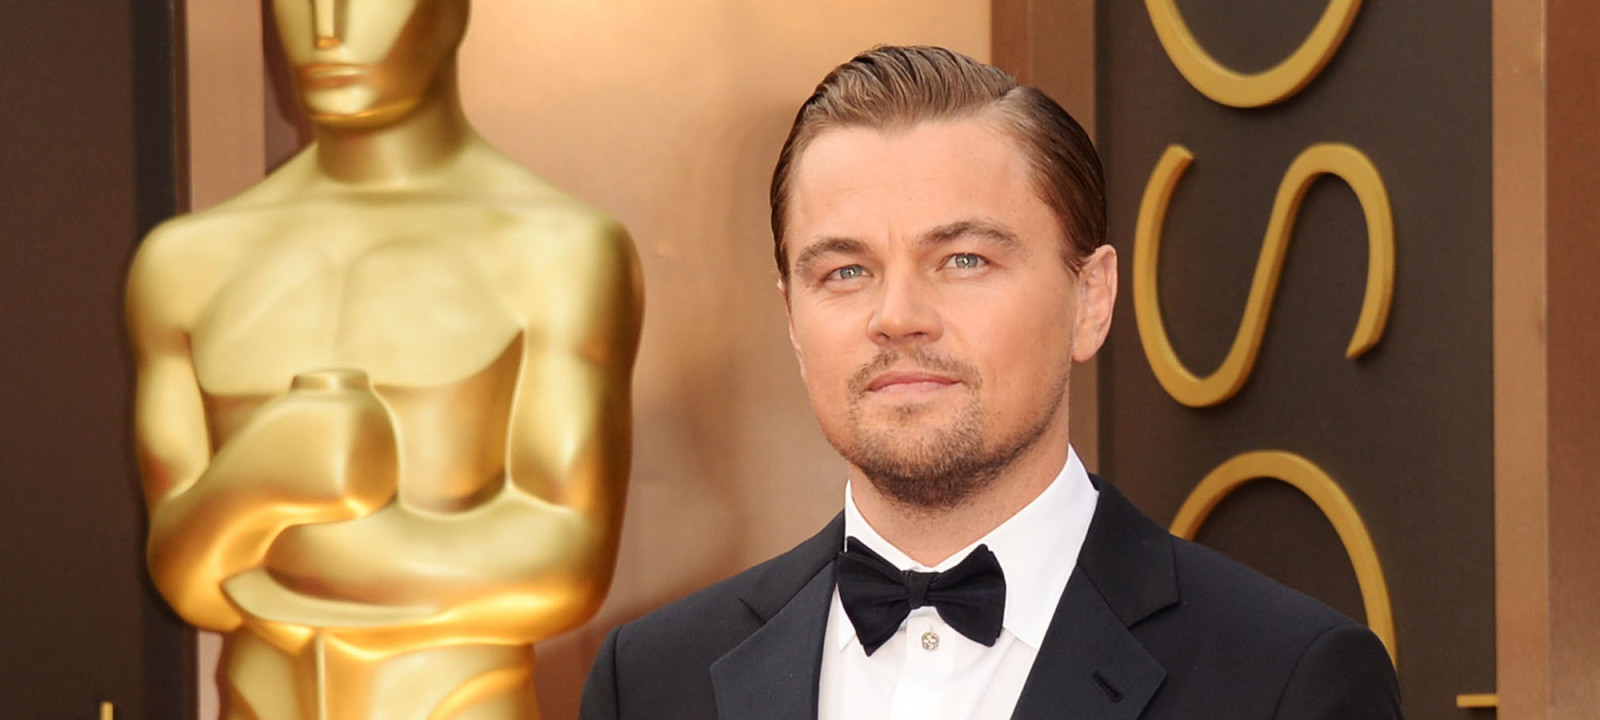 Leonardo DiCaprio attends the Oscars held at Hollywood & Highland Center on March 2, 2014 in Hollywood, California.